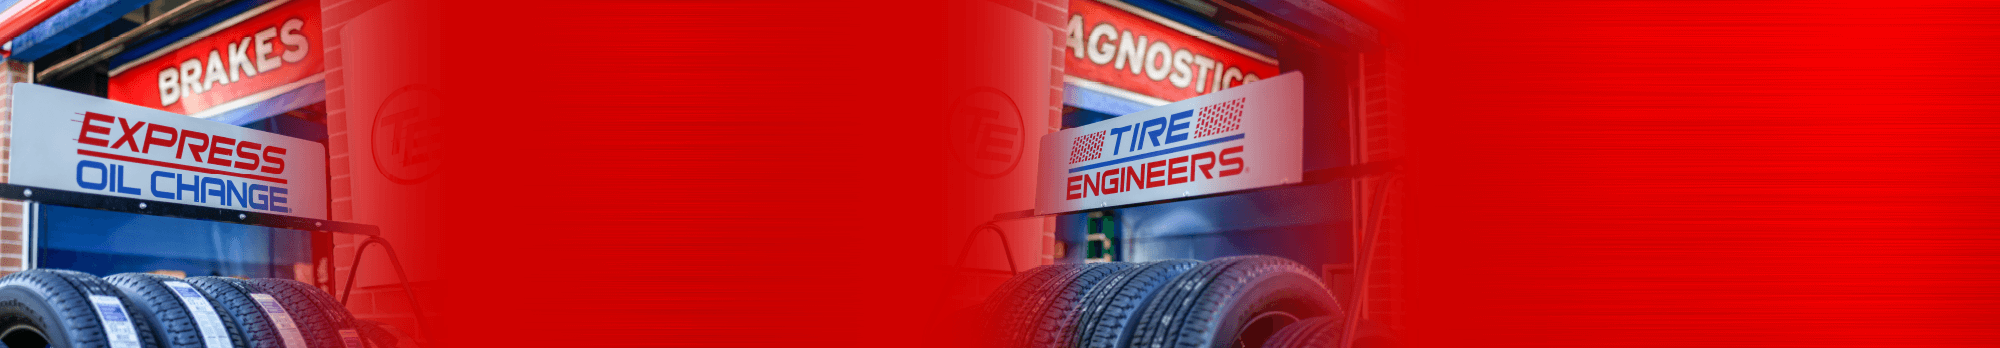 tire banner background